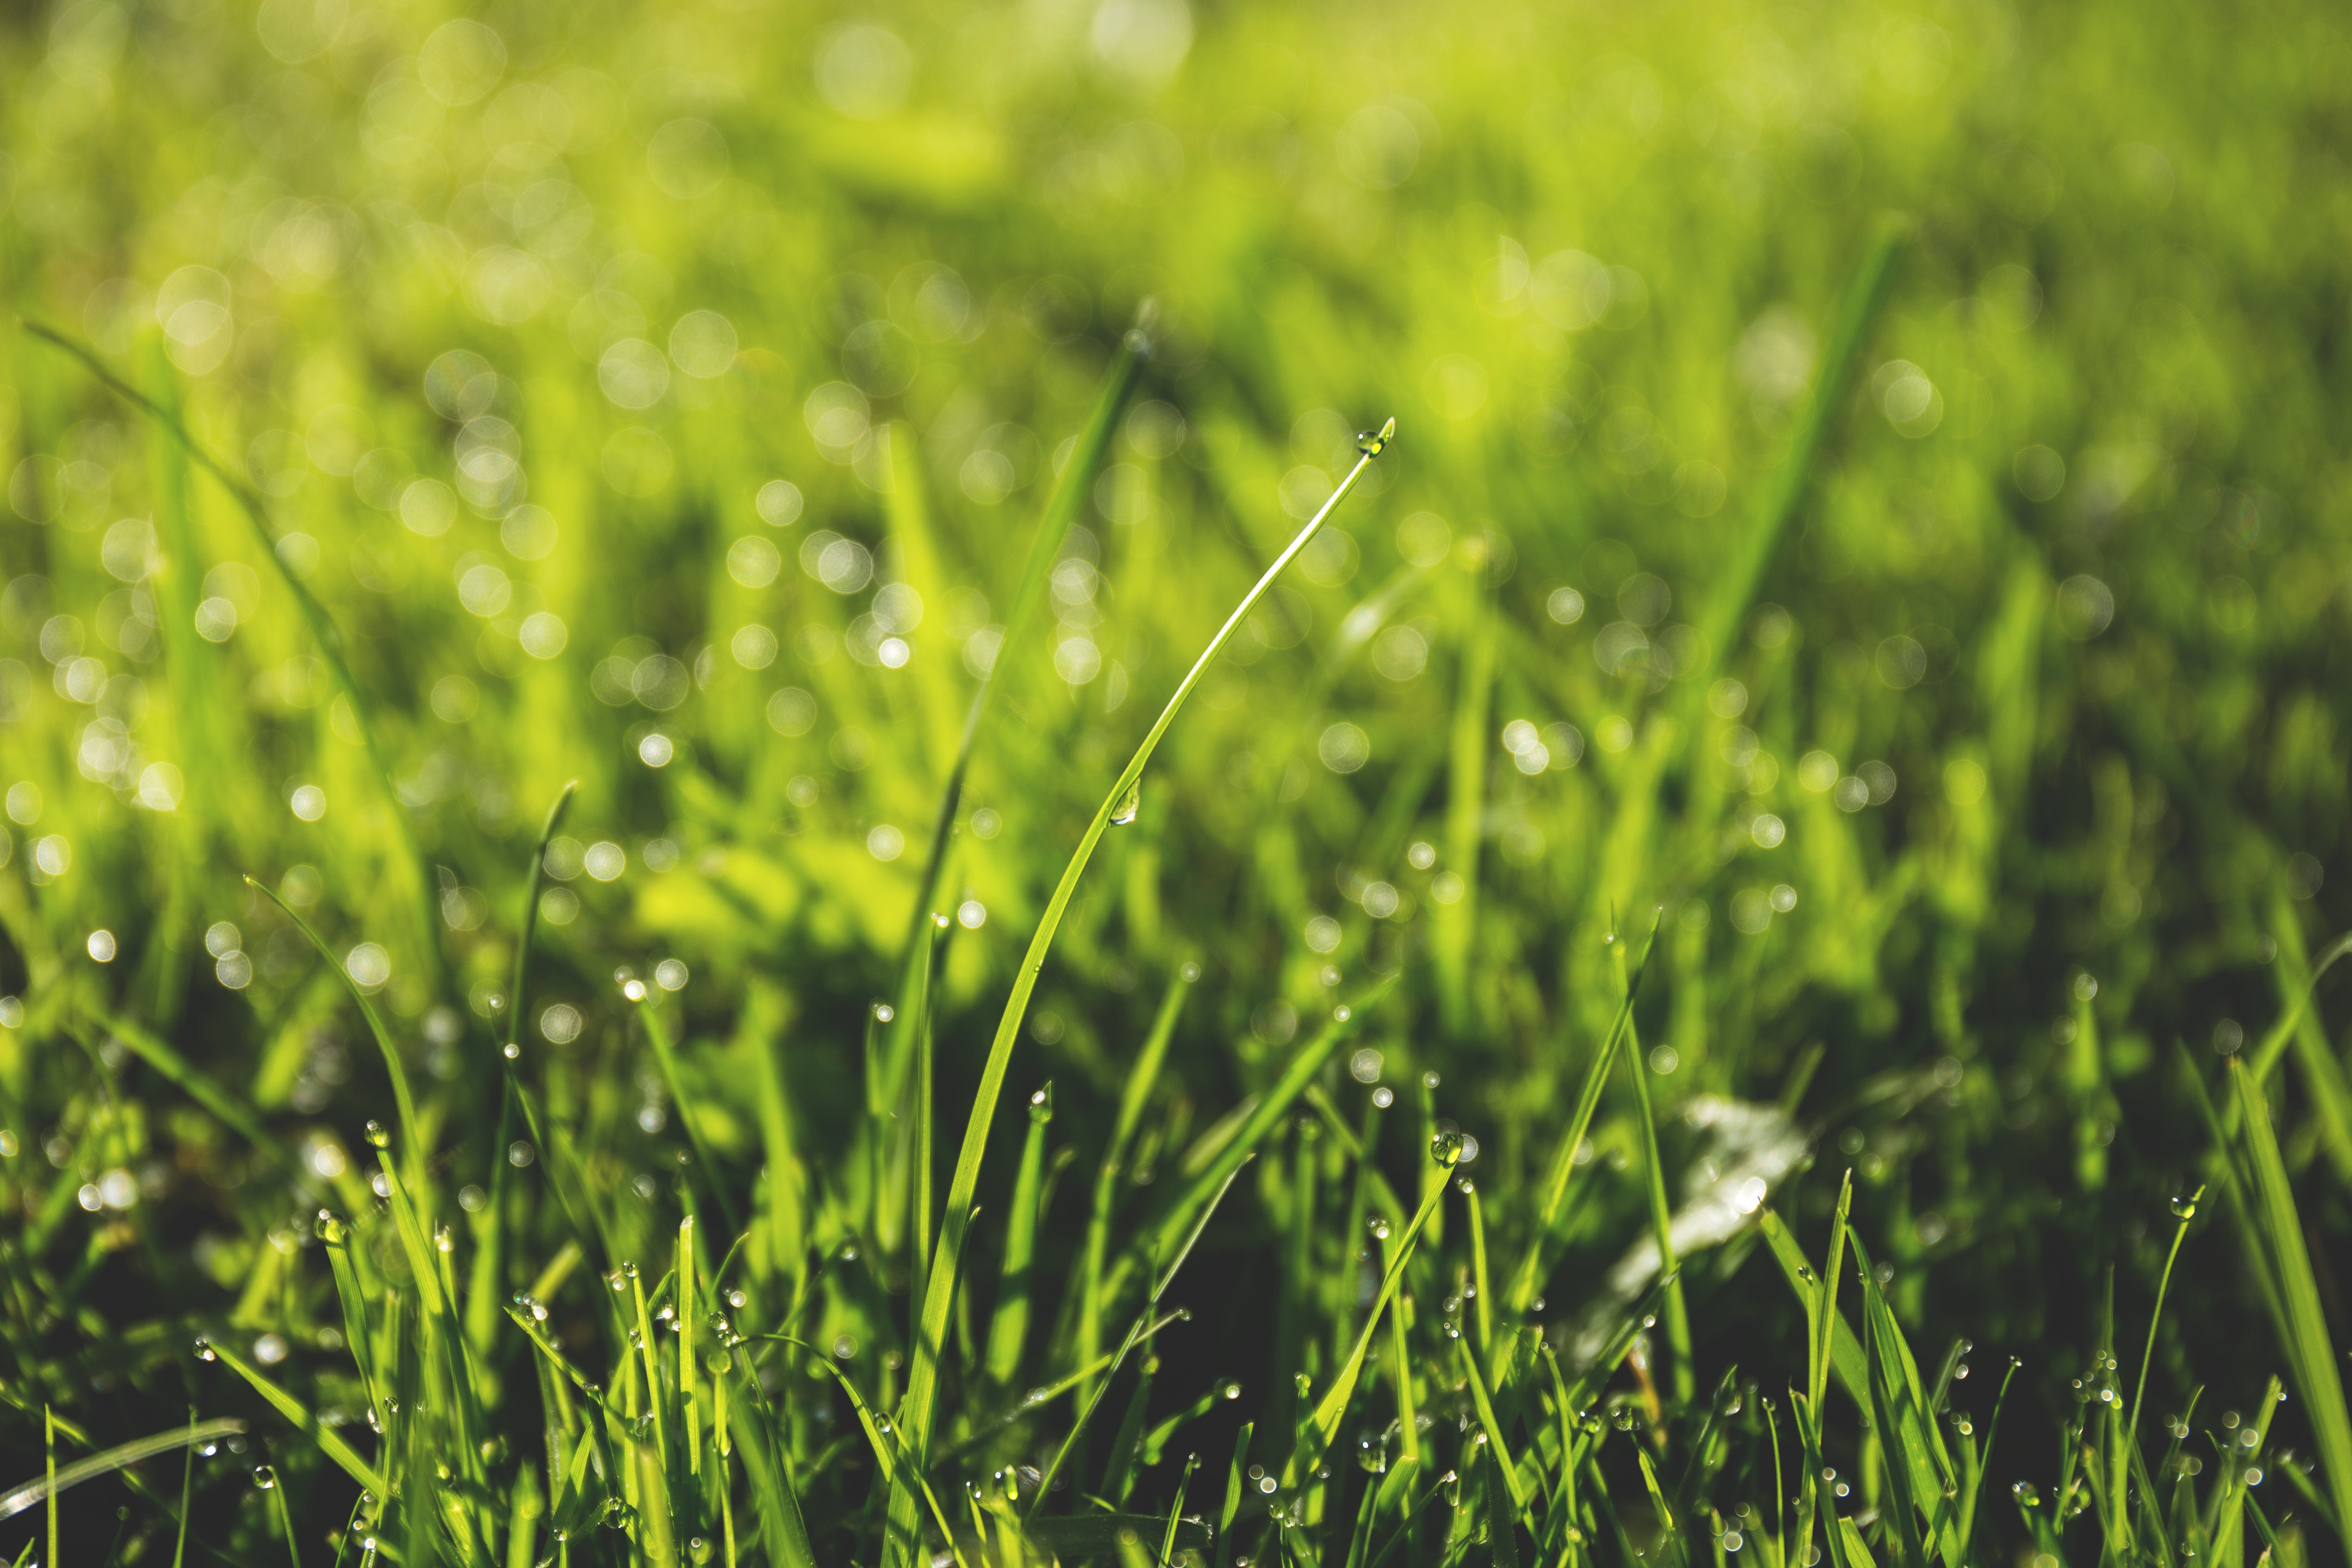 Macro Photography of Green Grass Field With Rain Drops